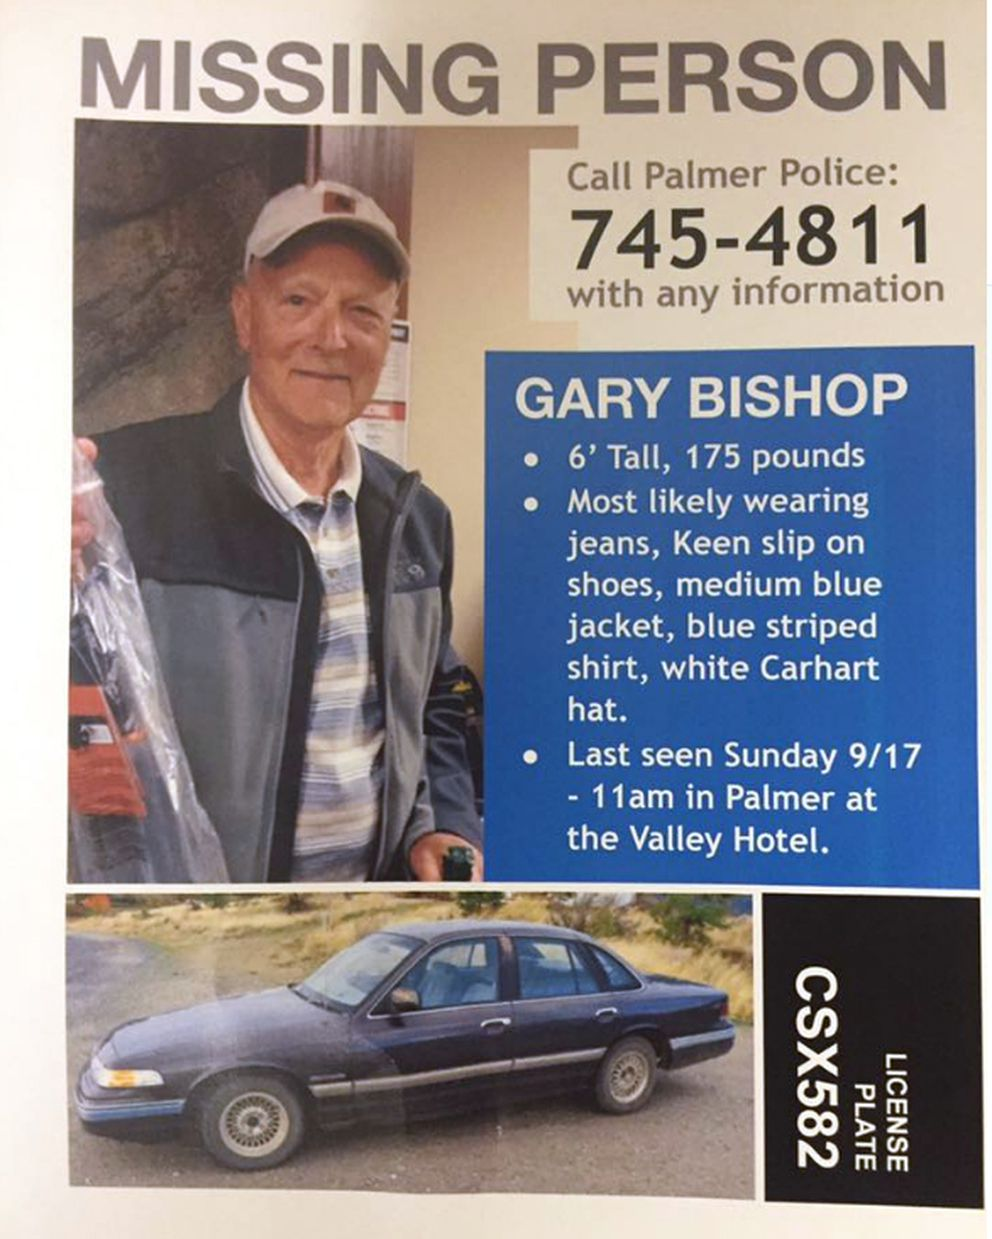 The Palmer Police Department issued a missing persons poster for Gary Bishop. He was last seen Sept. 17, 2017.